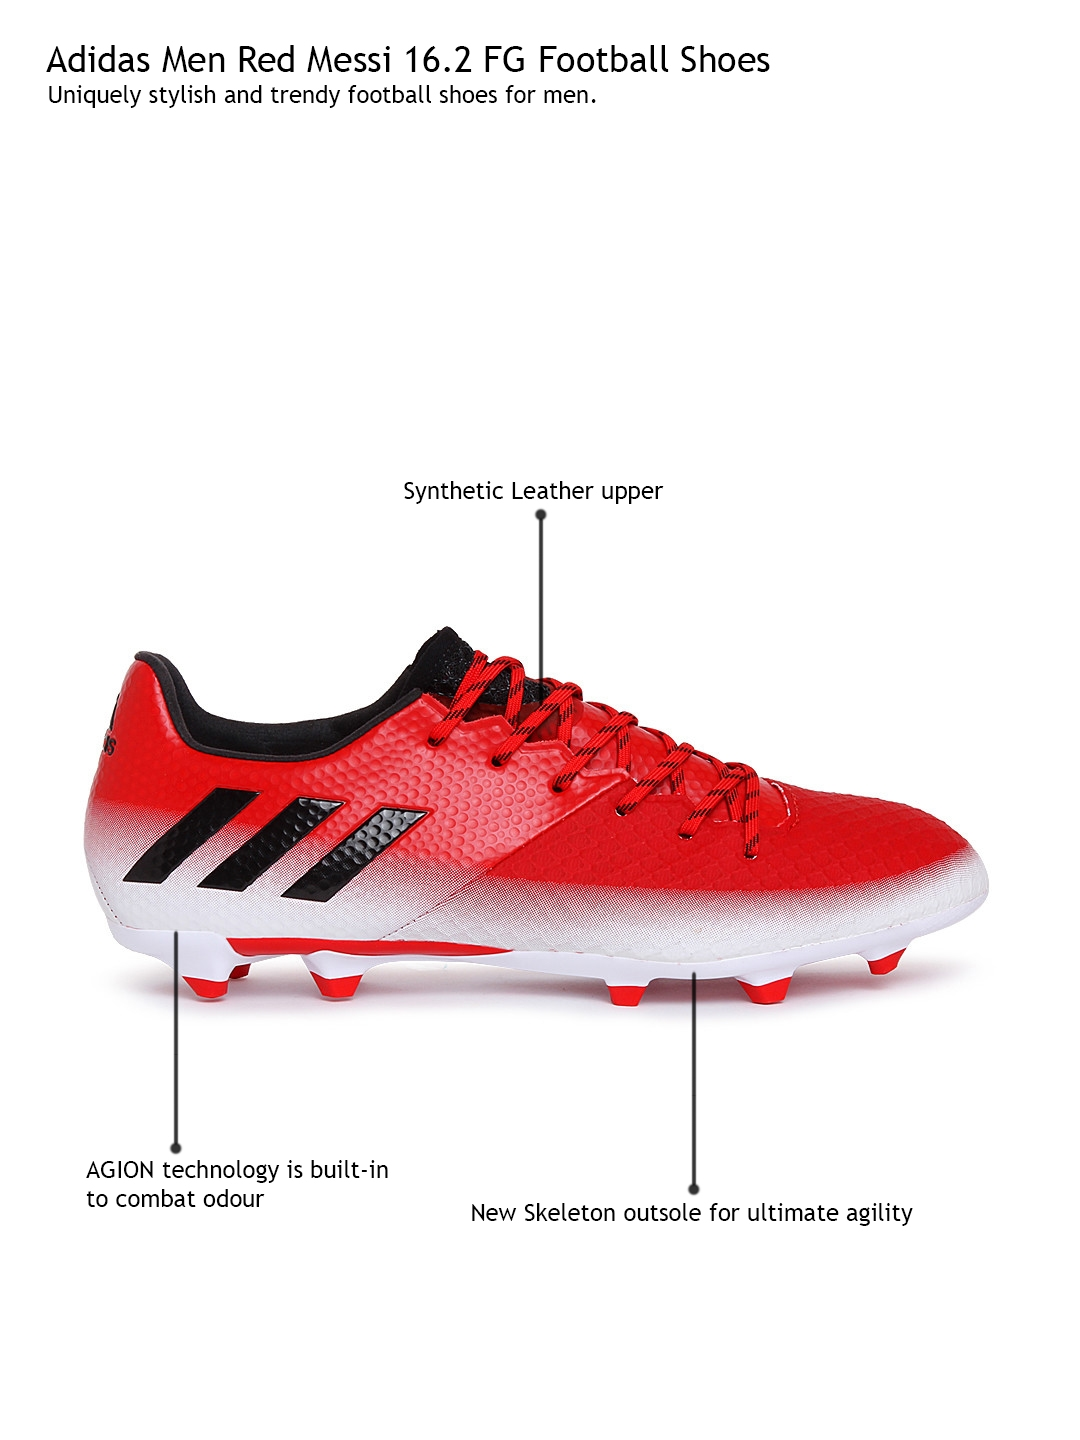 4a7b5cfc73b Buy ADIDAS Men Red Messi 16.2 FG Football Shoes - Sports Shoes for ...